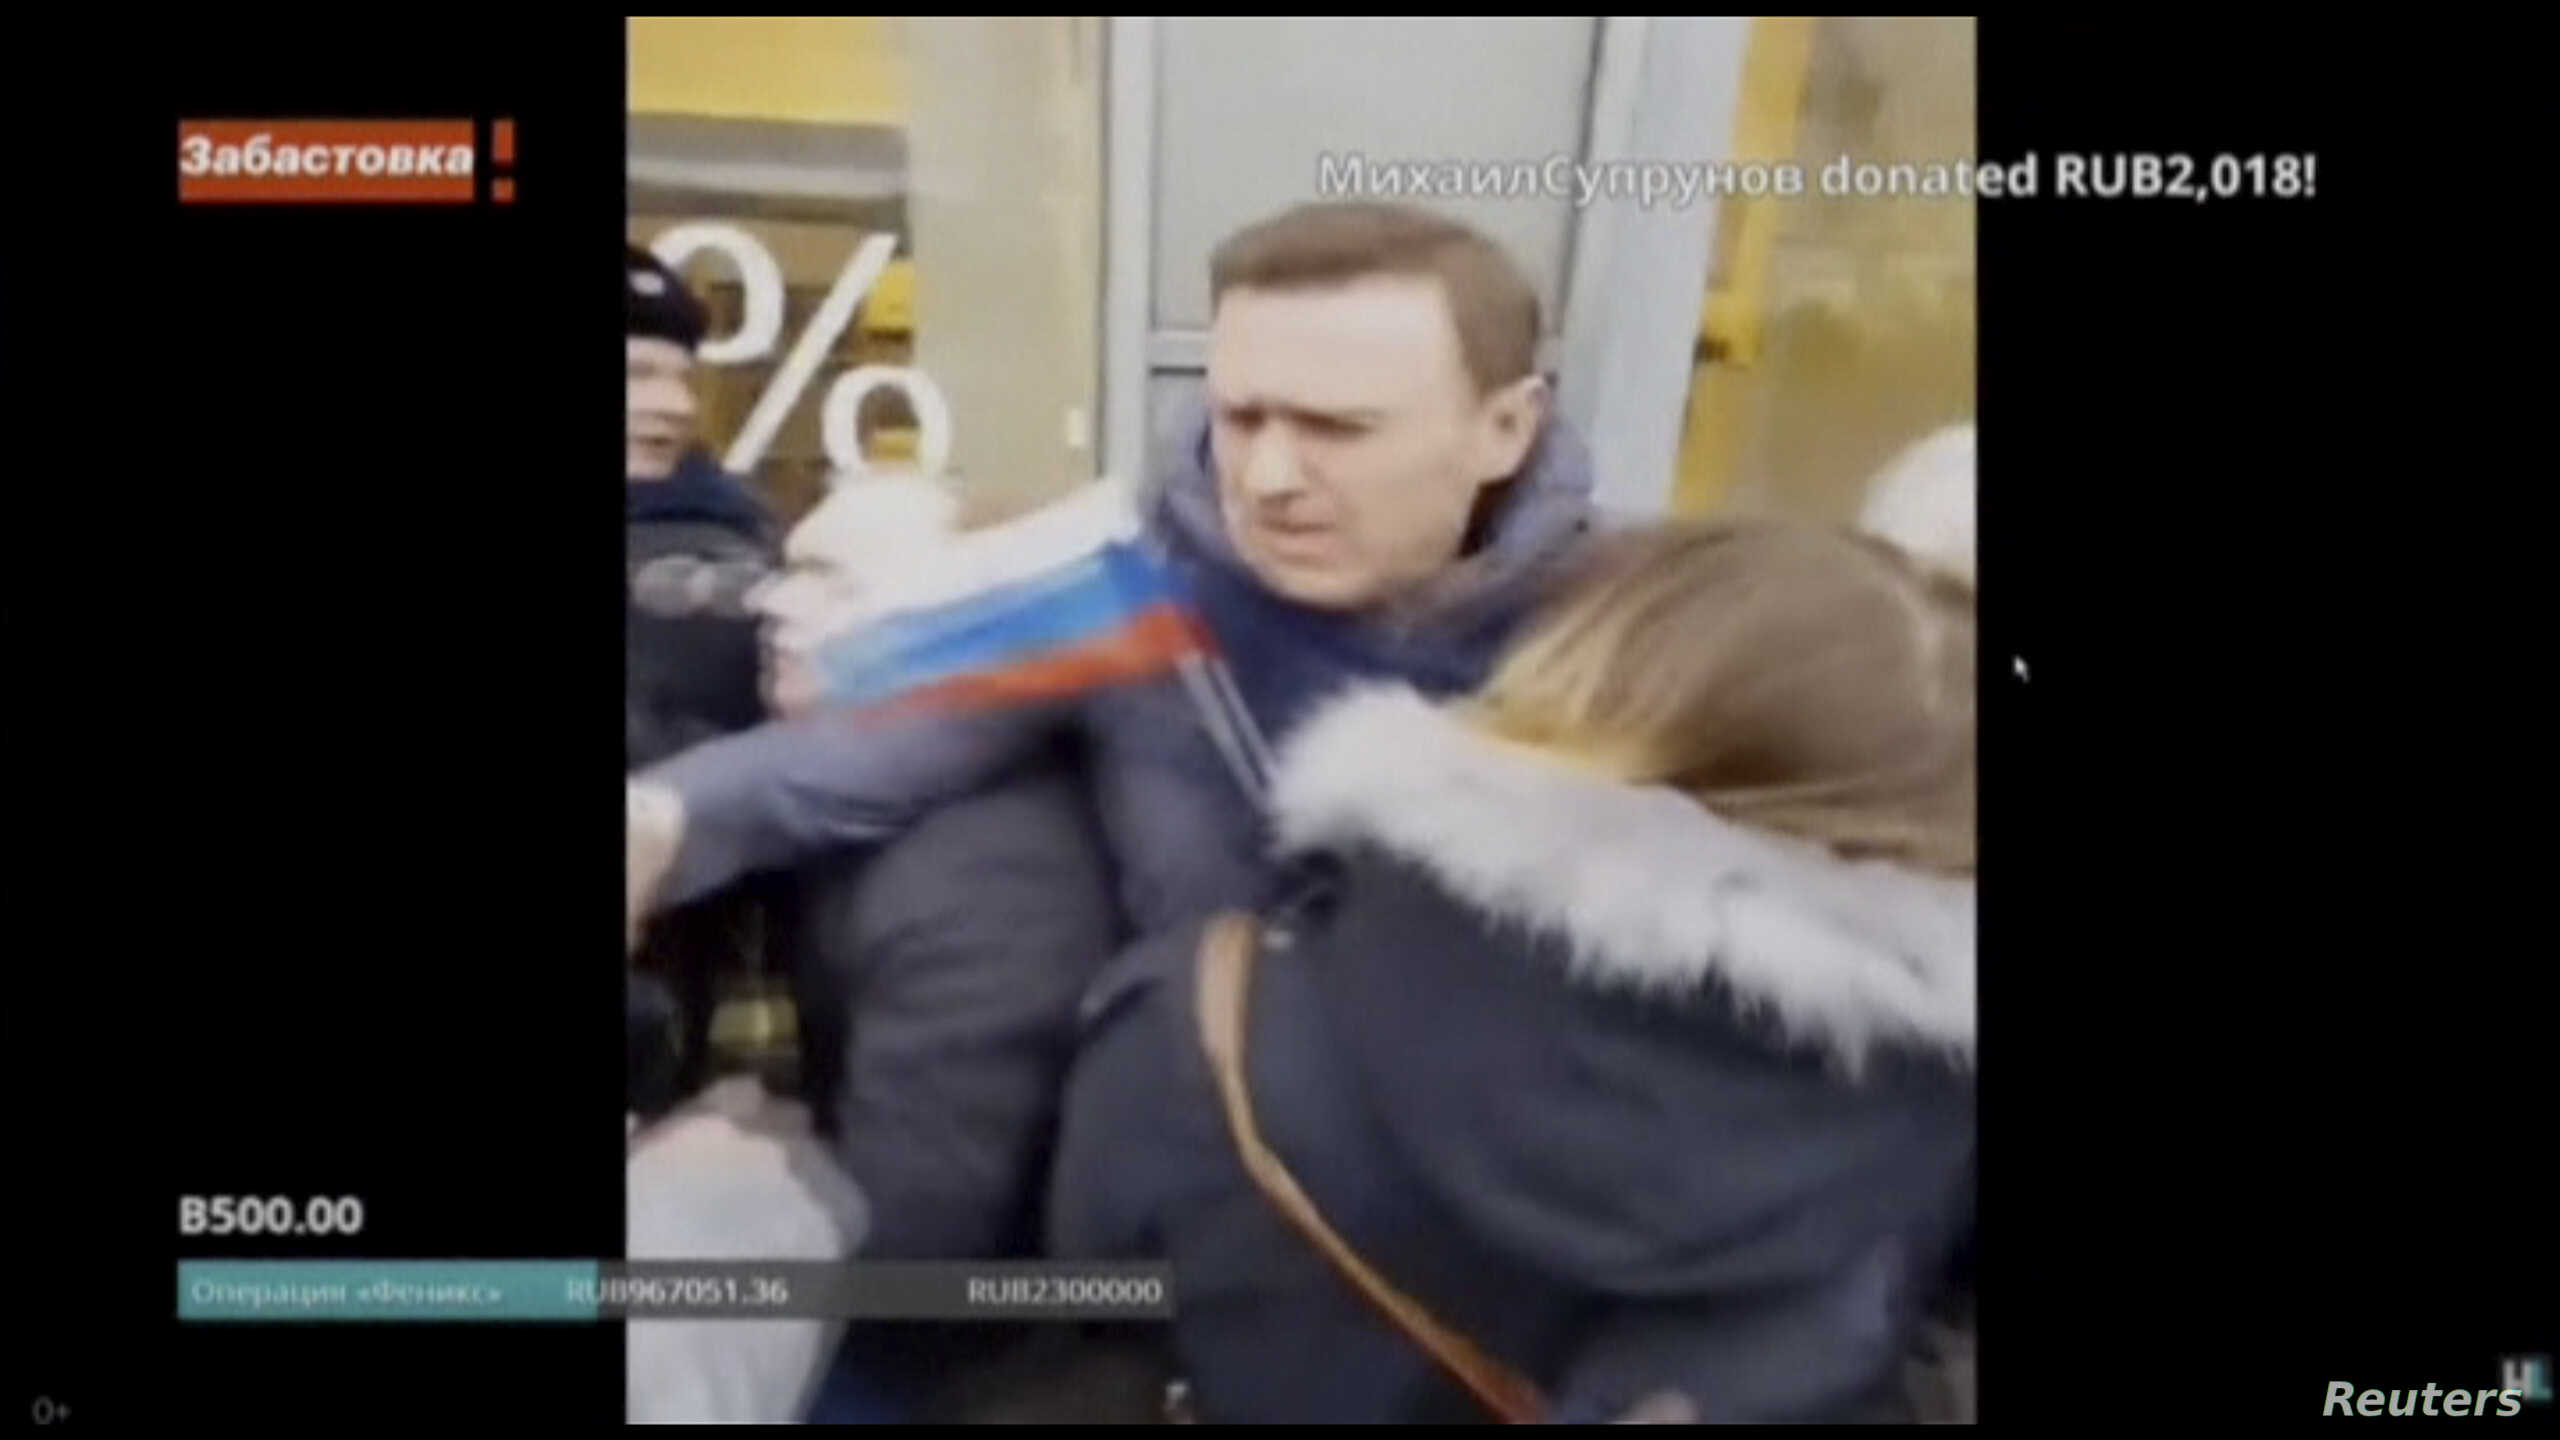 A still image taken from a video footage shows Russian opposition leader Alexei Navalny being detained by Interior Ministry members during a rally for a boycott of a March 18 presidential election in Moscow, Russia, Jan. 28, 2018.